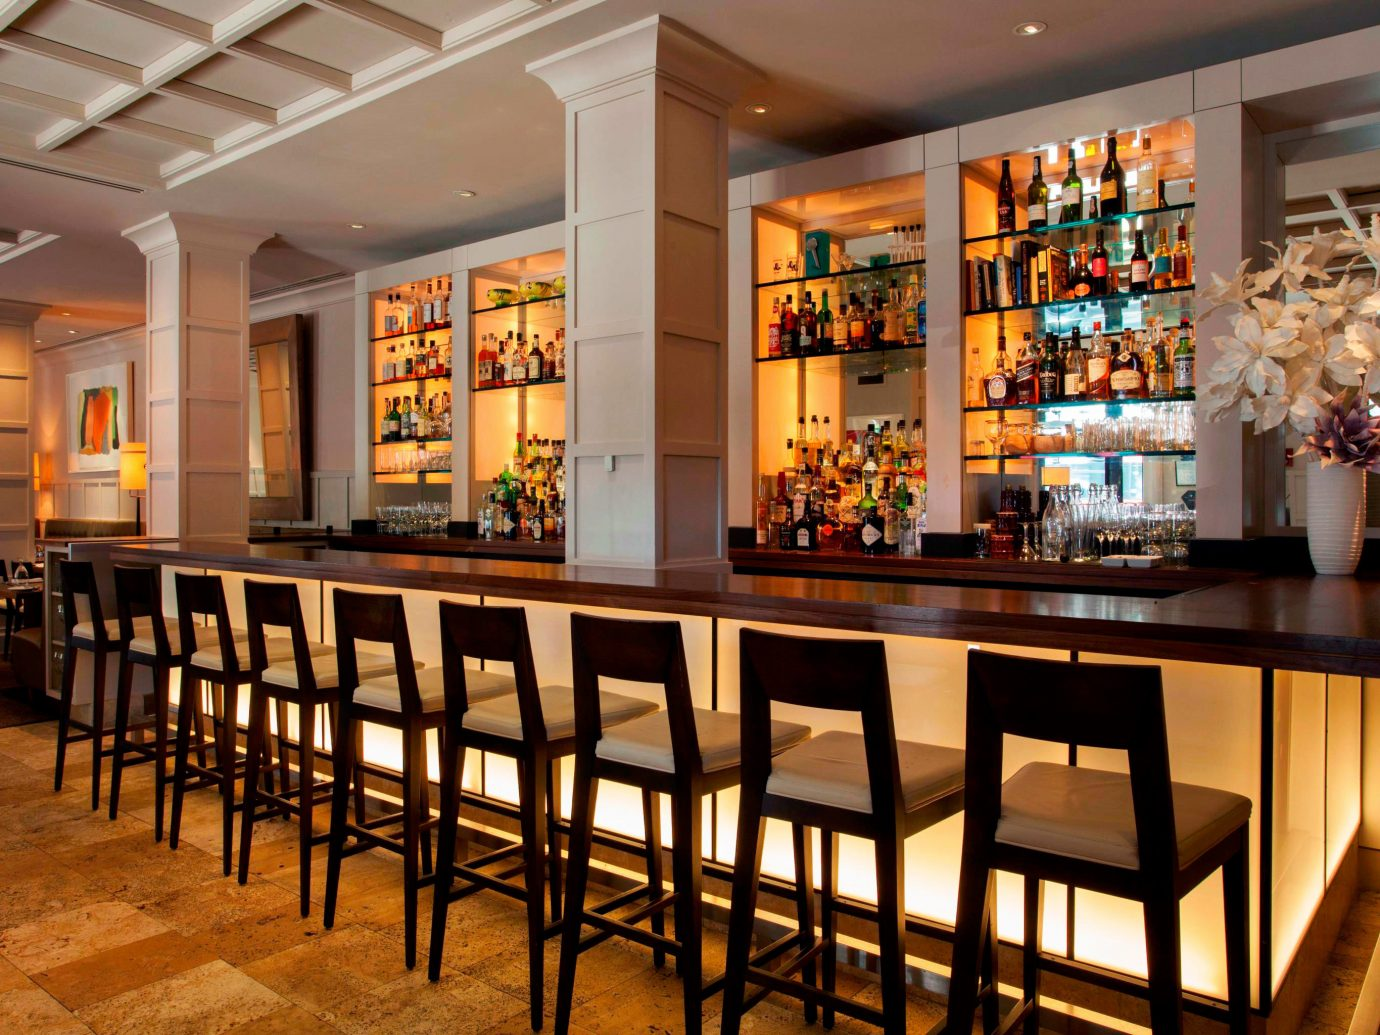 Bar boutique city classic drink elegant hotels indoor ceiling scene restaurant interior design café estate meal